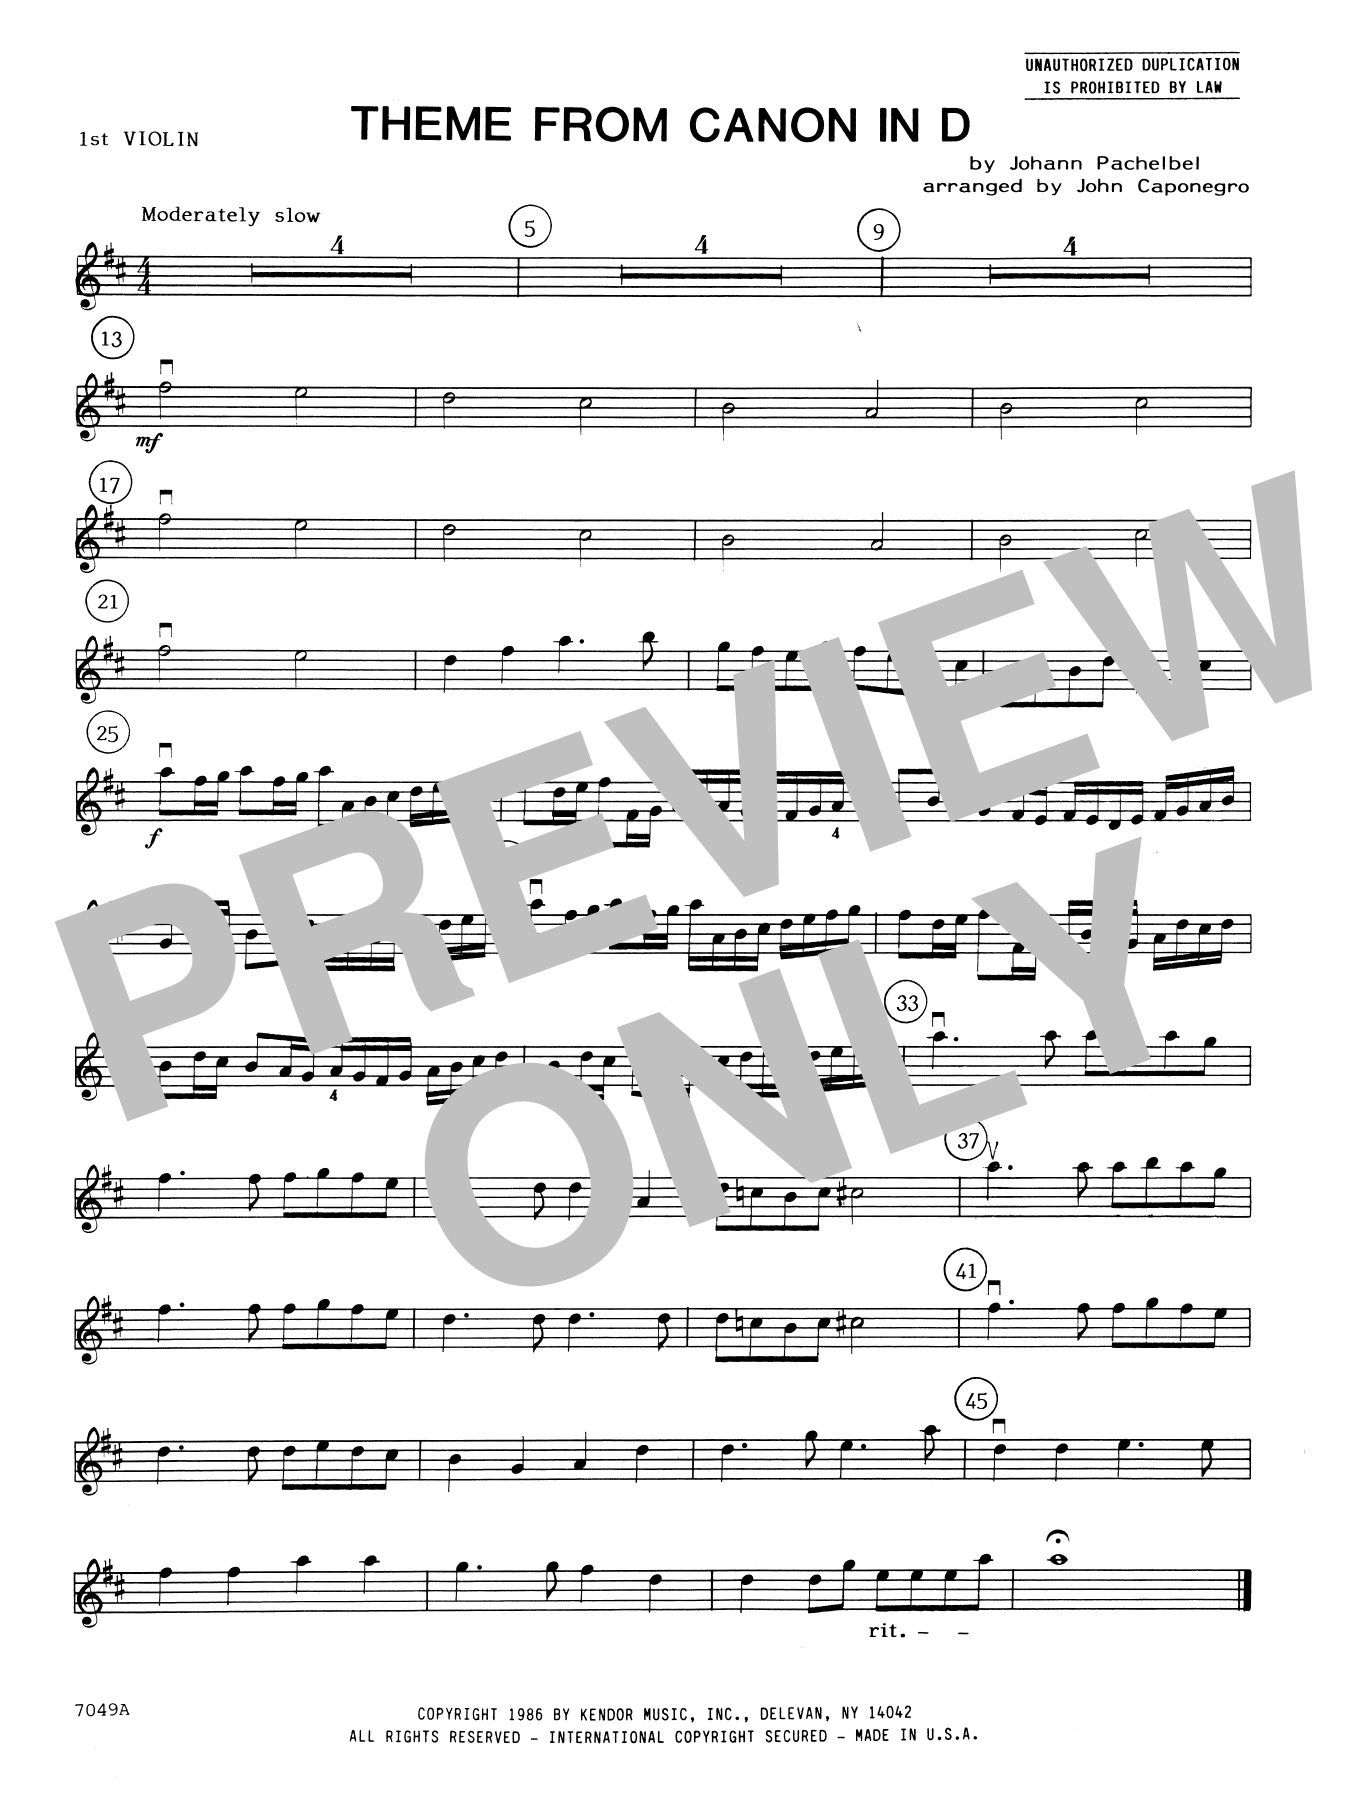 John Caponegro Theme From Canon In D - 1st Violin sheet music notes and chords. Download Printable PDF.